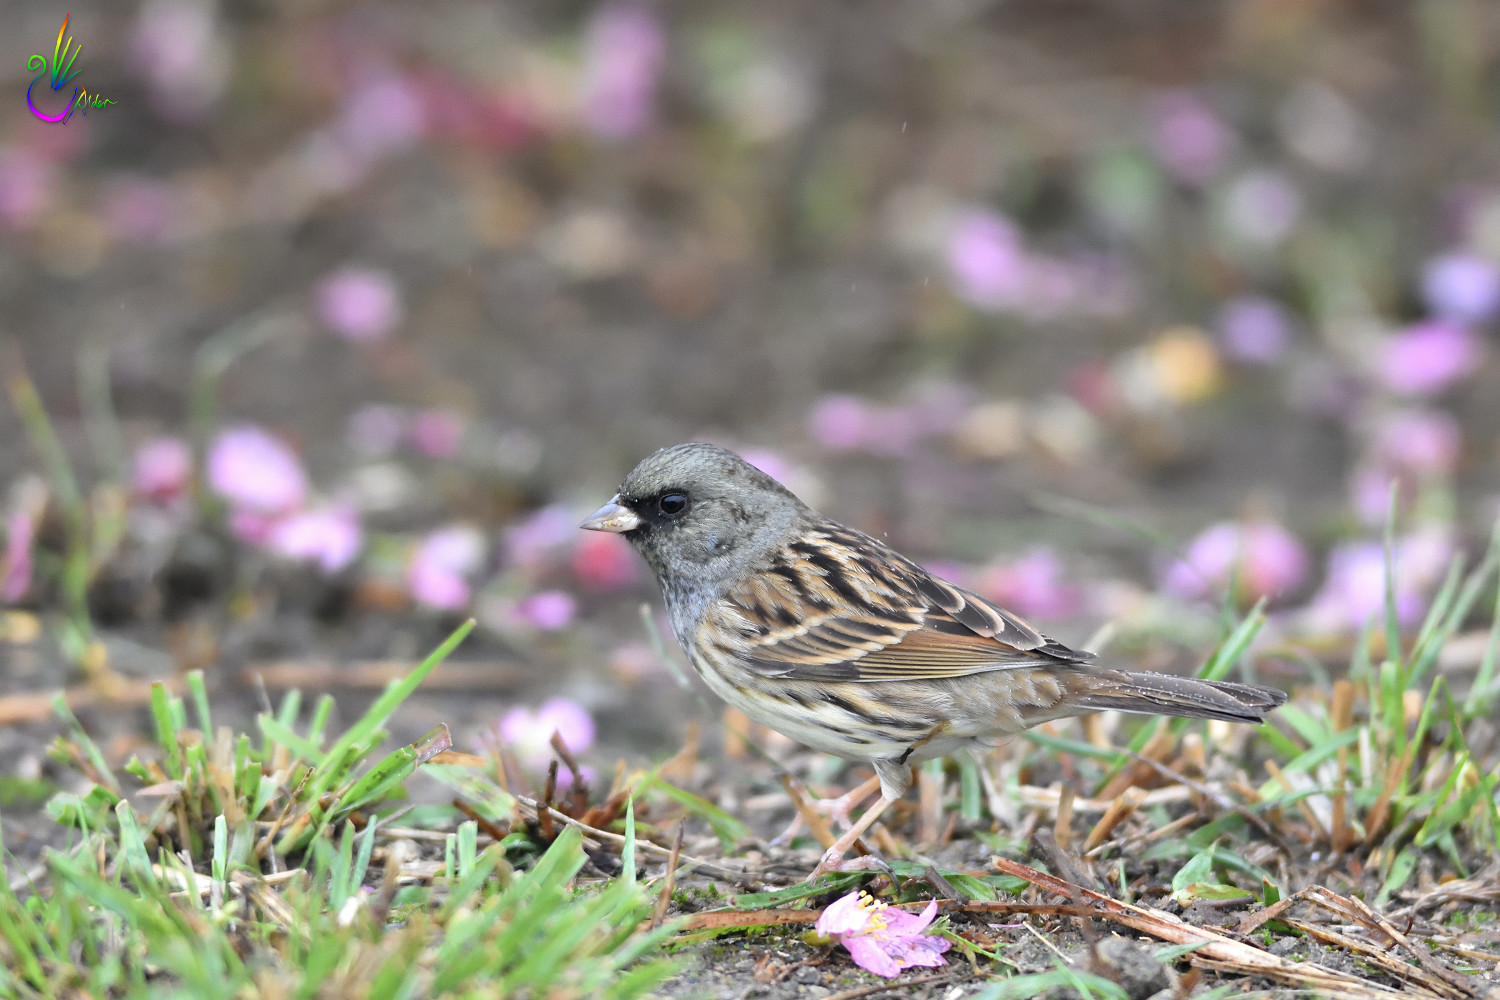 Black-faced_Bunting_7560